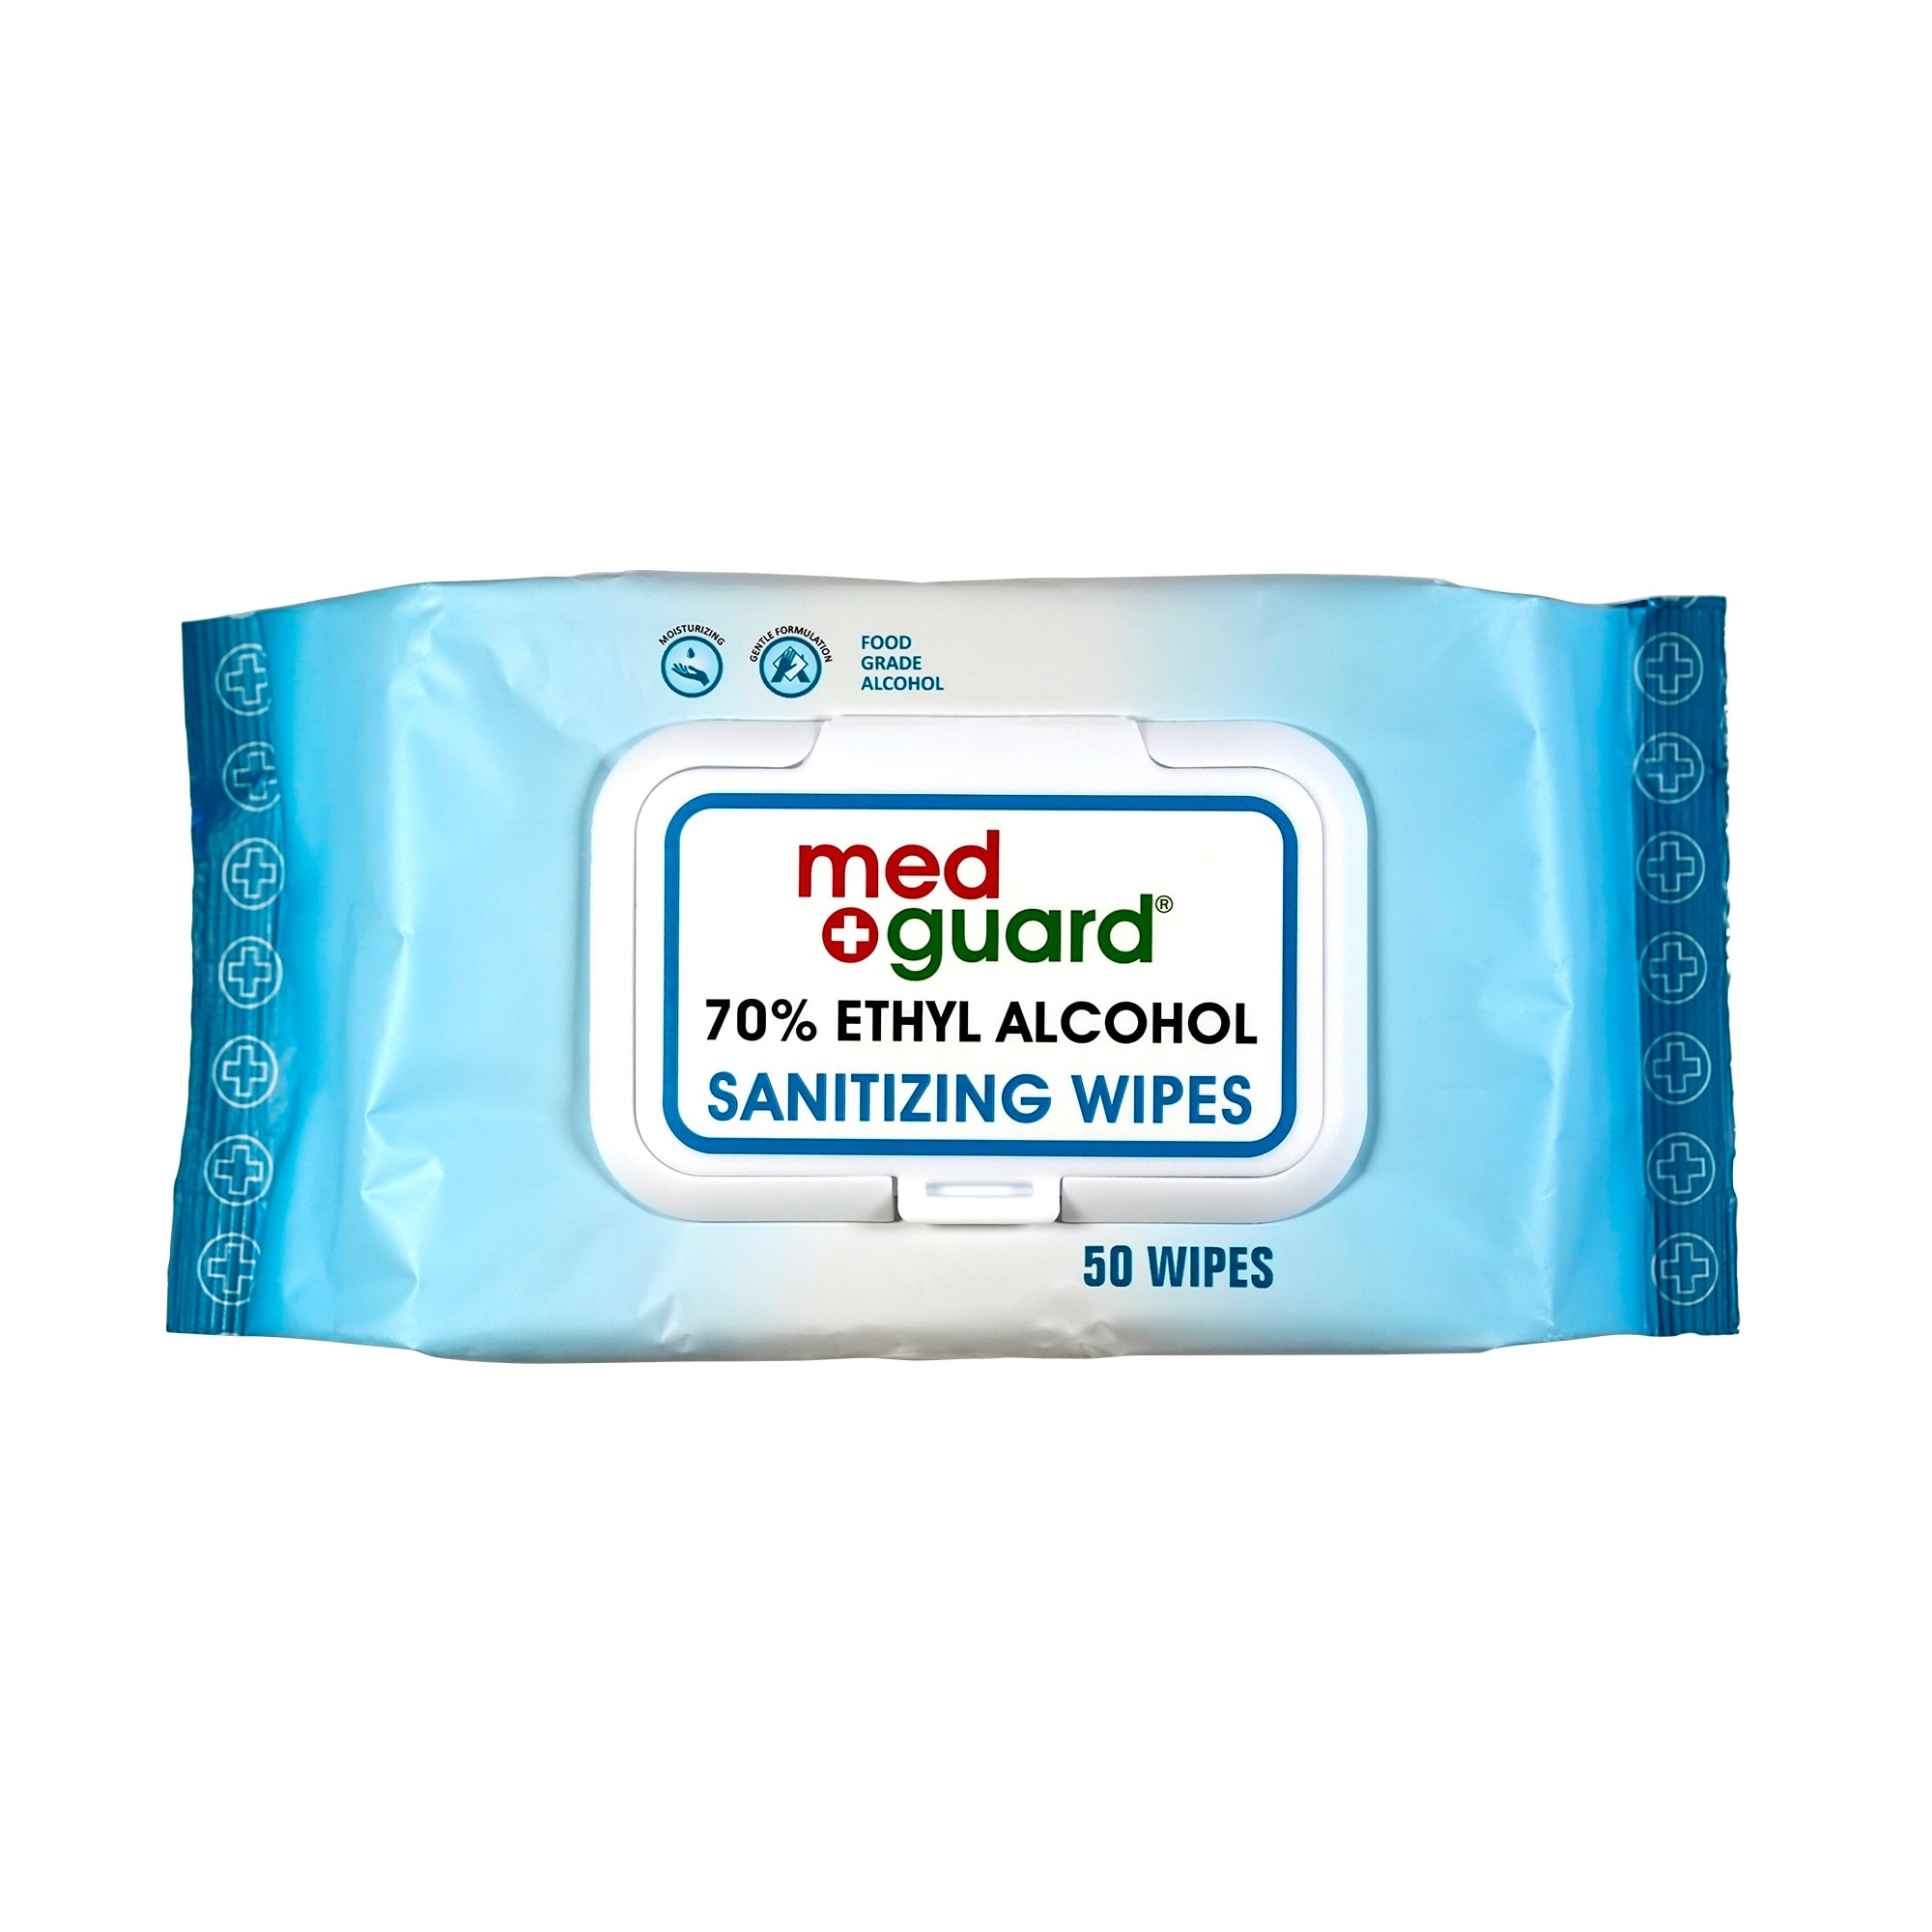 MED GUARD70% Ethyl Alcohol  Sanitizing Wipes 50s,Alcohol and Disinfectant-